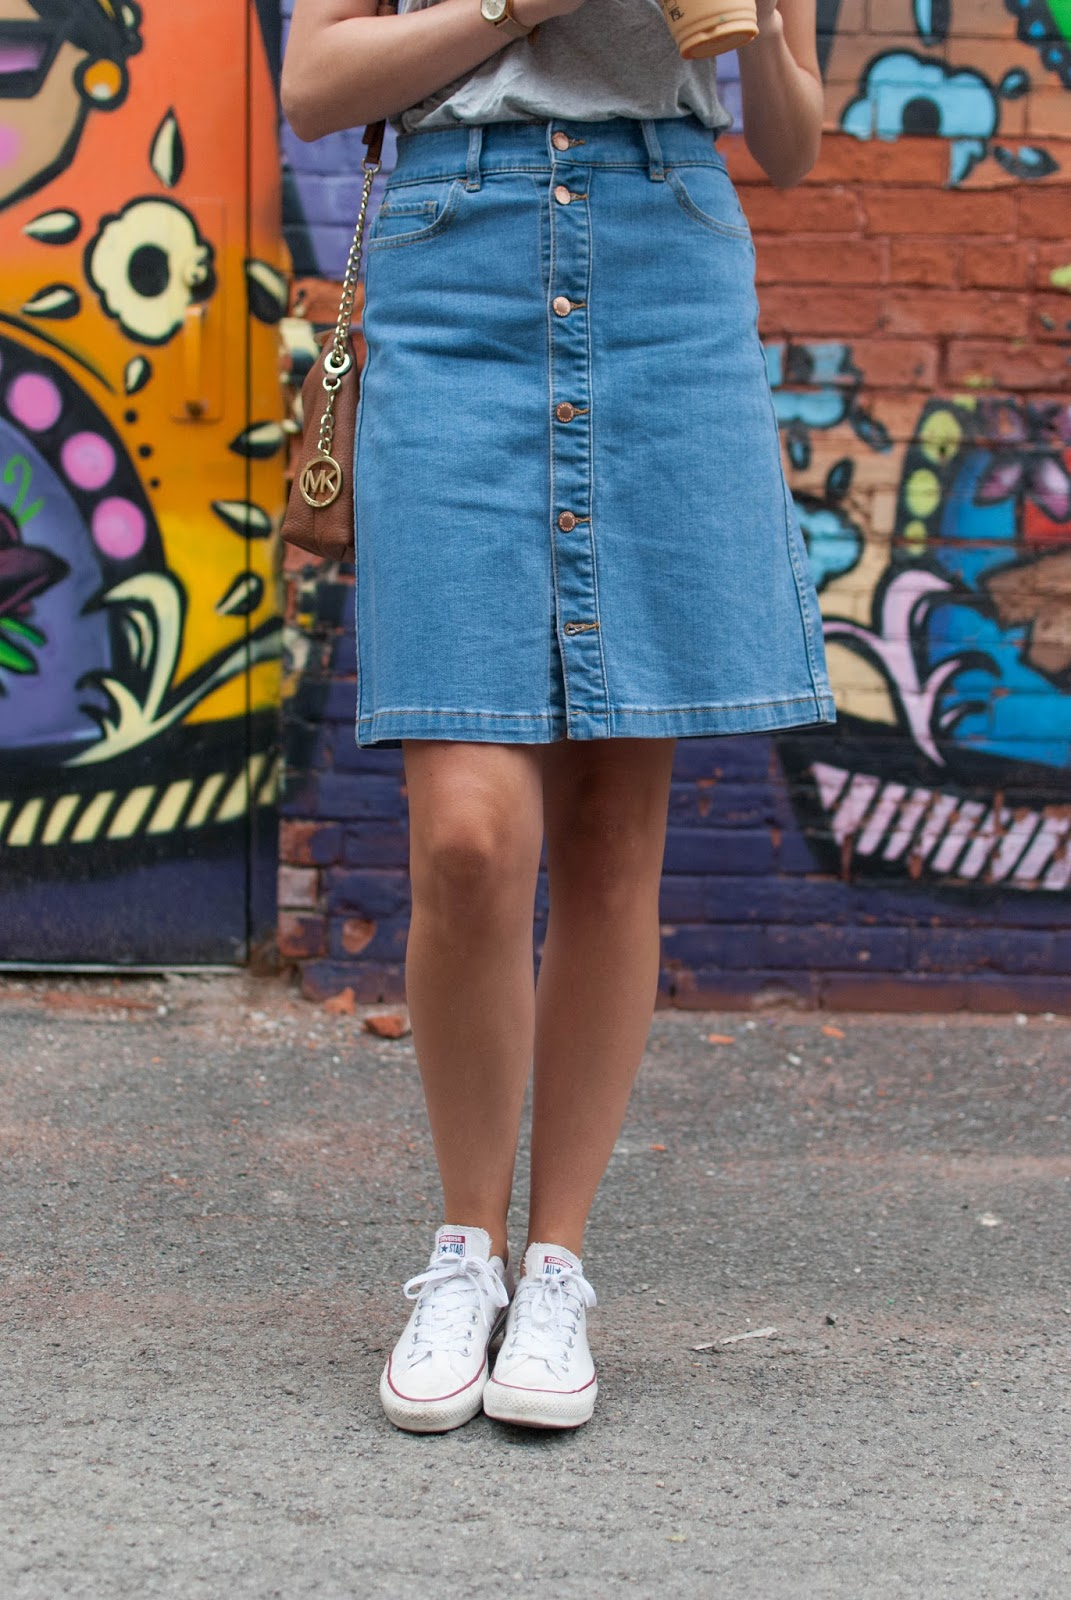 Detail shot of denim skirt